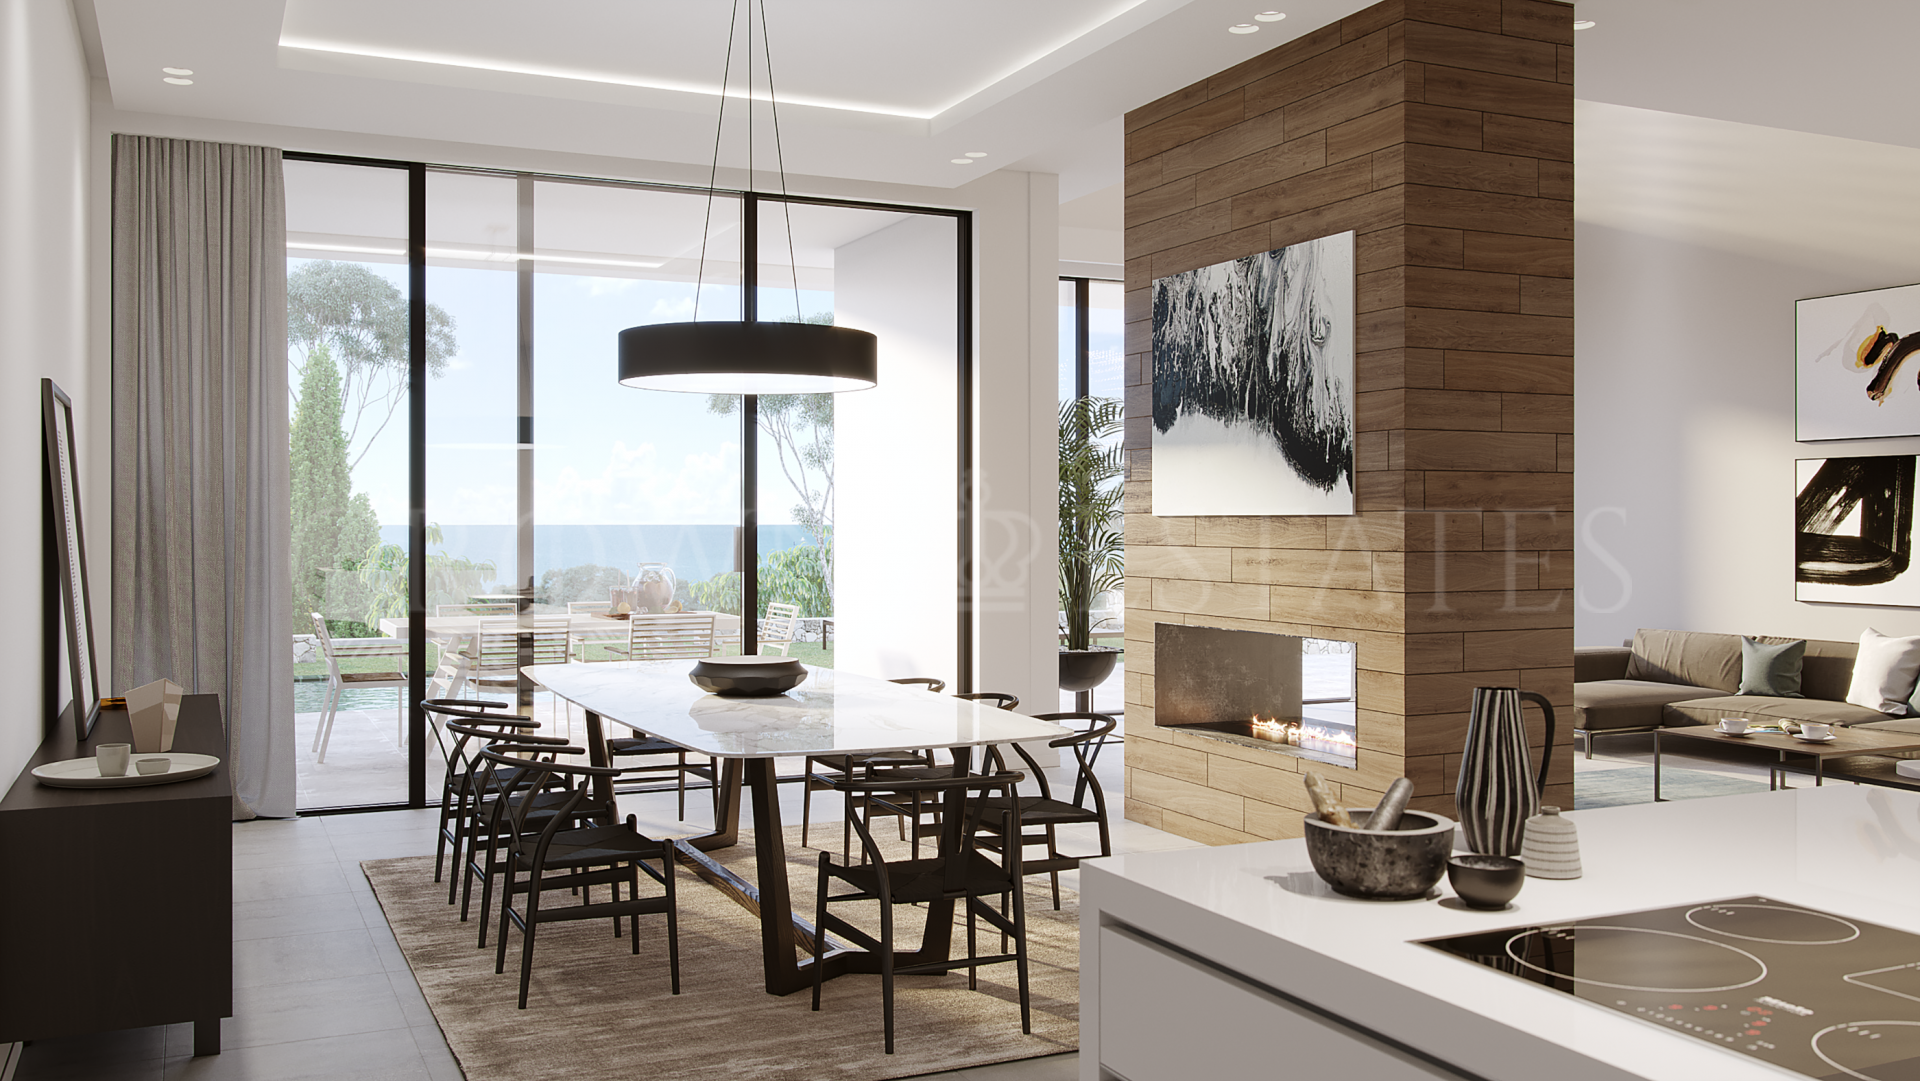 Riva Residences, a boutique development of 6 luxury residences with stunning sea views